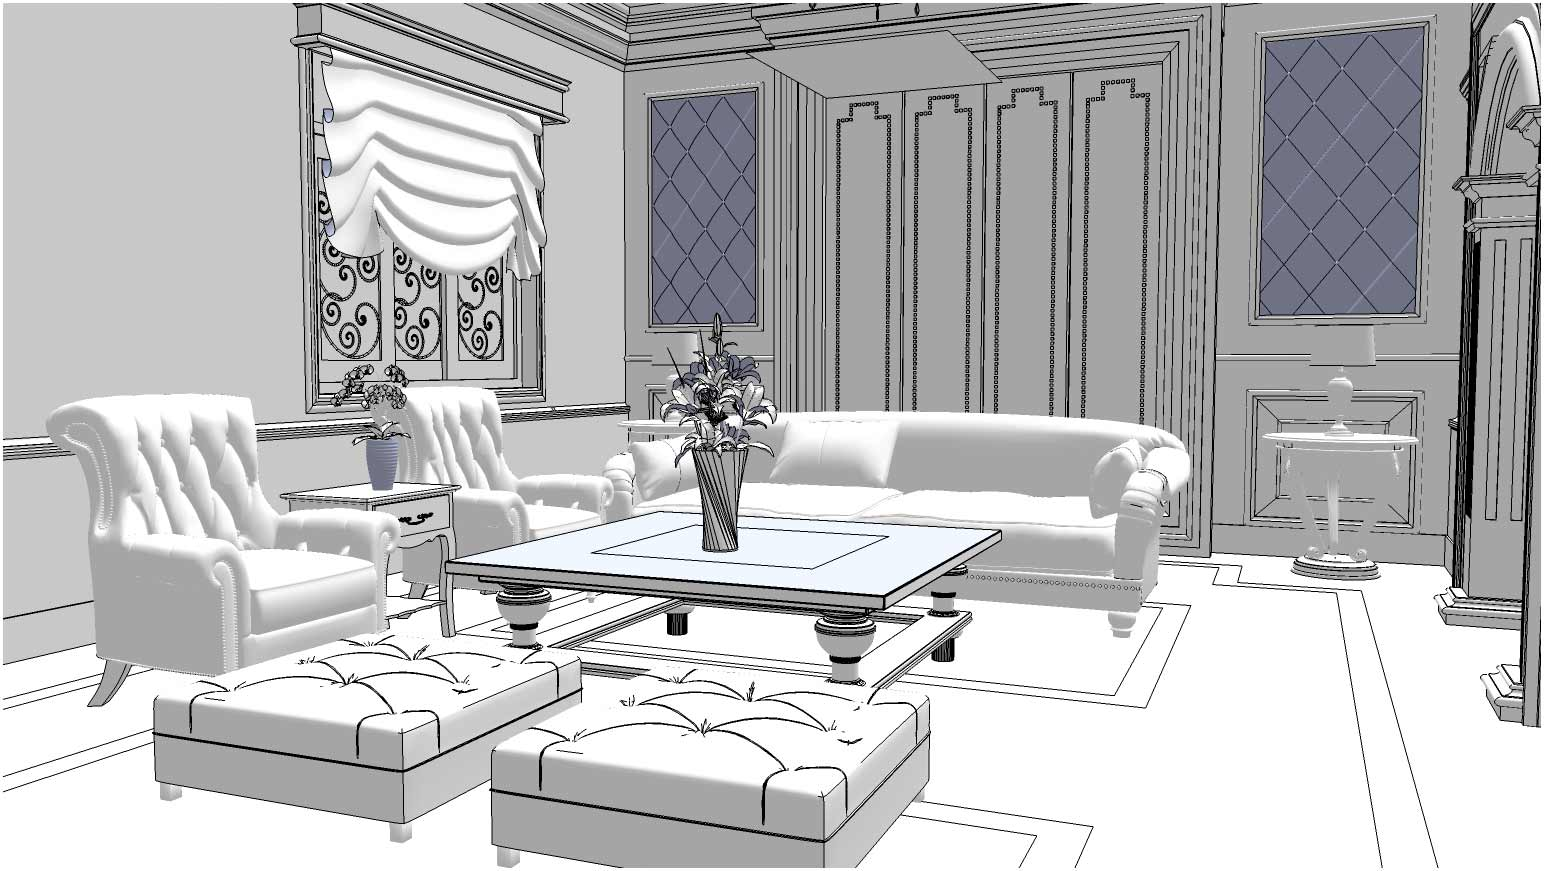 Free sketchup 3d model living room 13 vray sketchup tut for 3d model room design